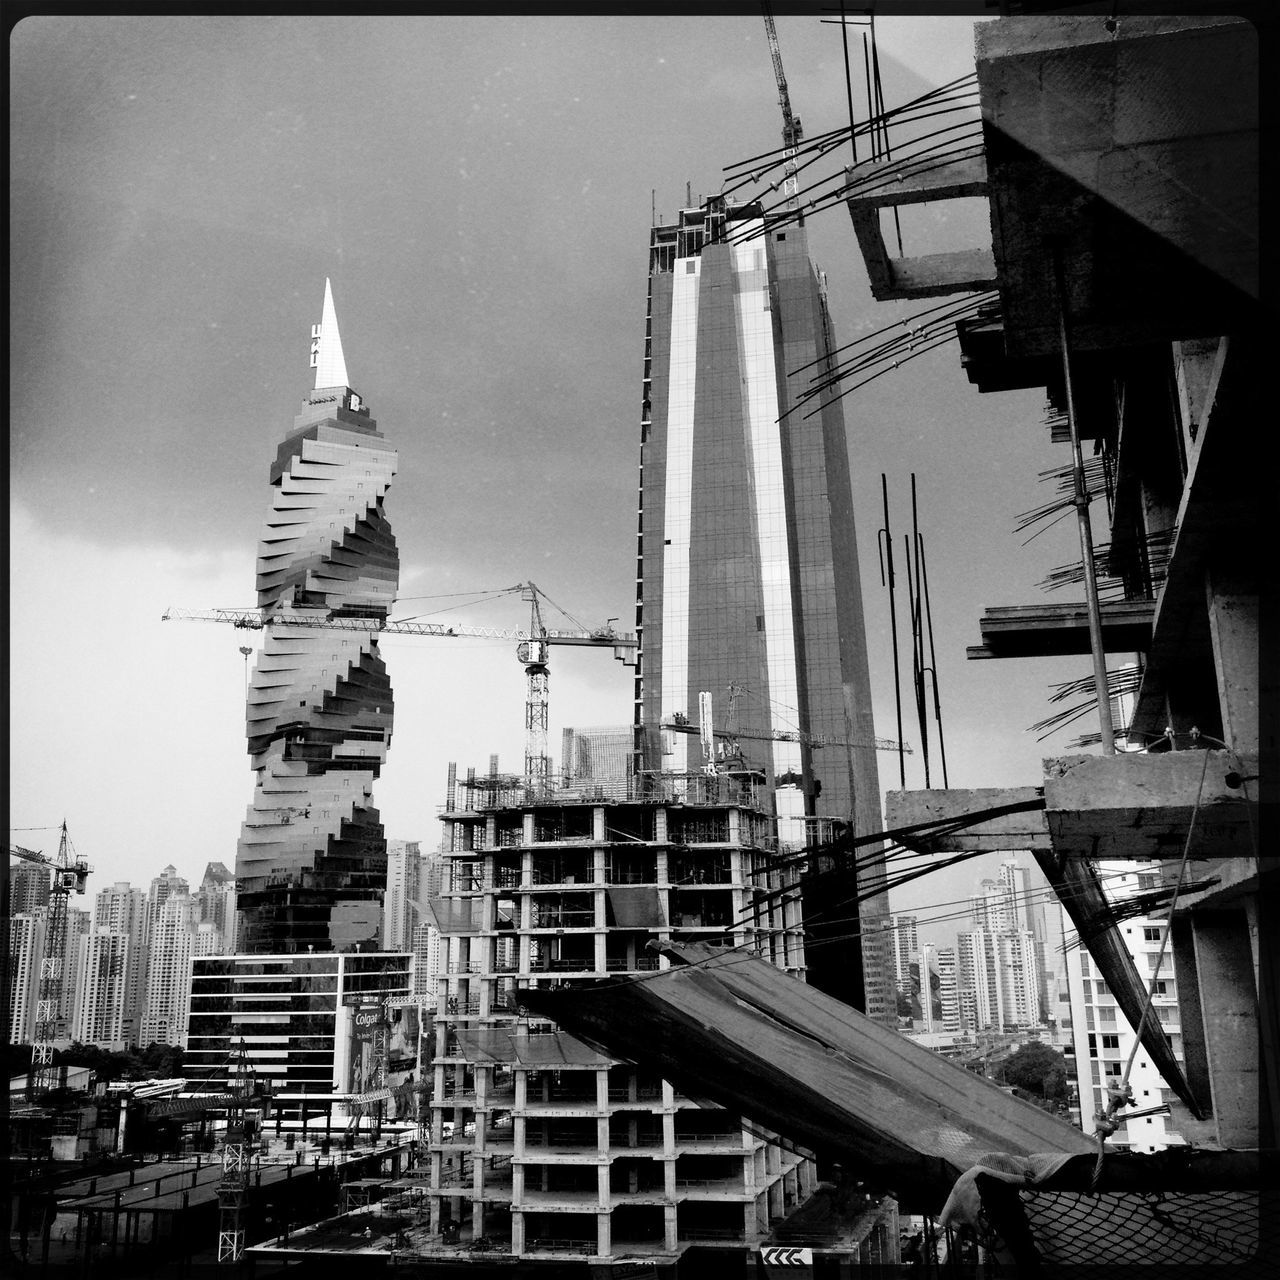 Panama City 08-2013 Panamá Blackandwhite Black And White Architecture